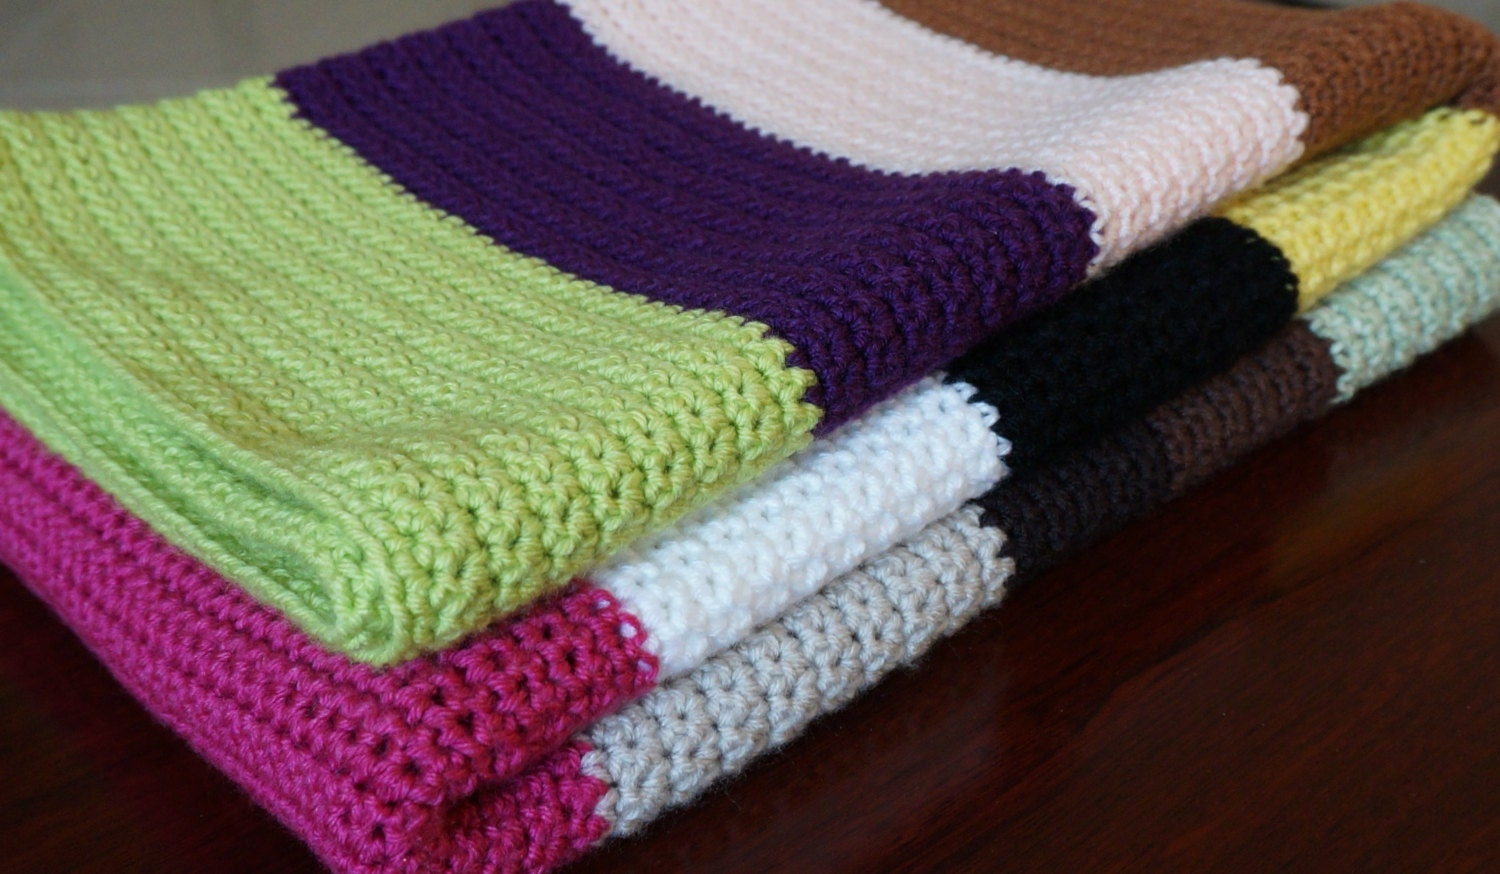 Crocheting Easy Blankets Throws And Wraps : Item Details Shipping & Policies